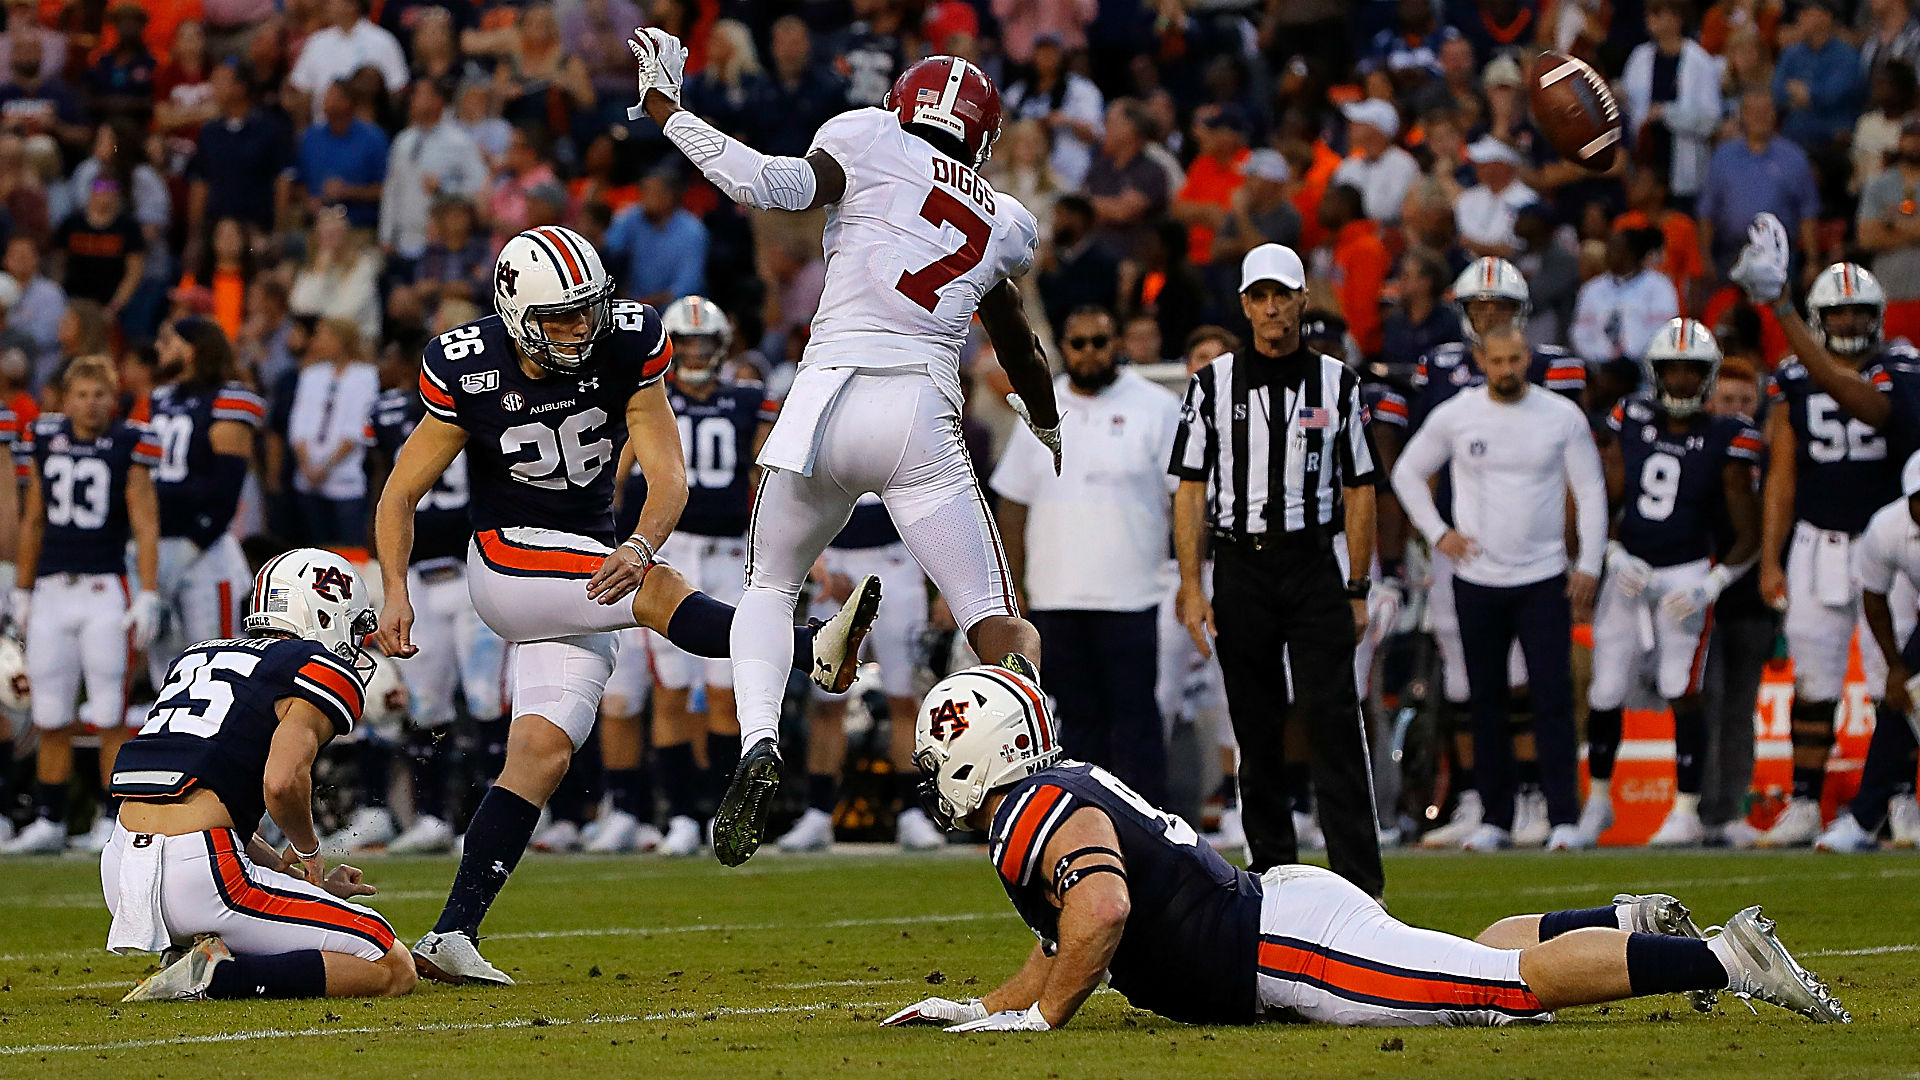 Auburn's last-second field goal vs. Alabama makes difference in Iron Bowl win